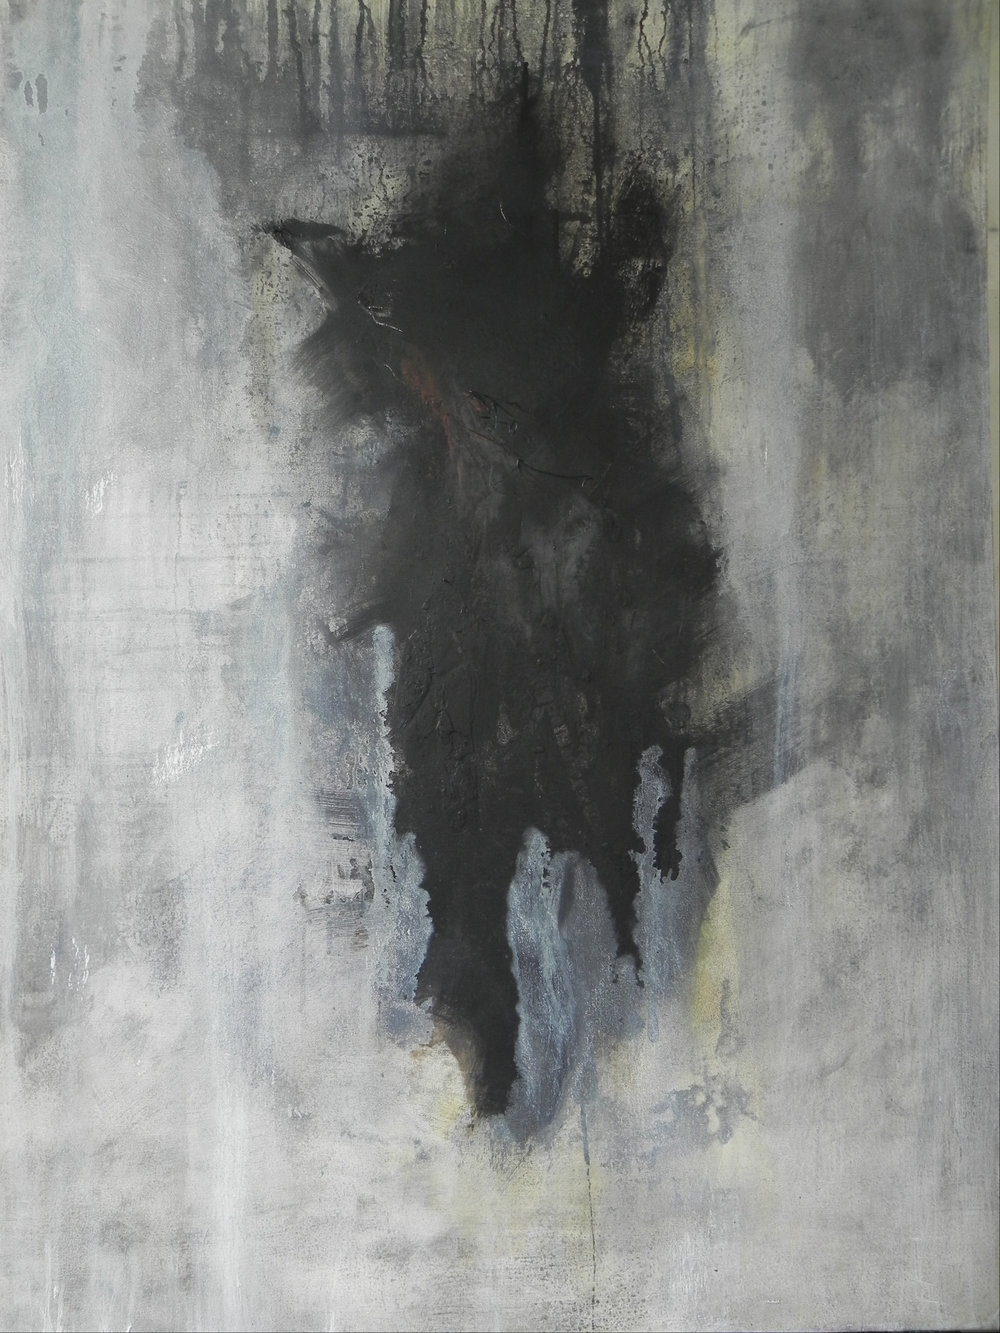 "SHADOW, 2014. 3640"" x 30"". Canvas. Mixed Media. Copyright © Karen Santos 2014."